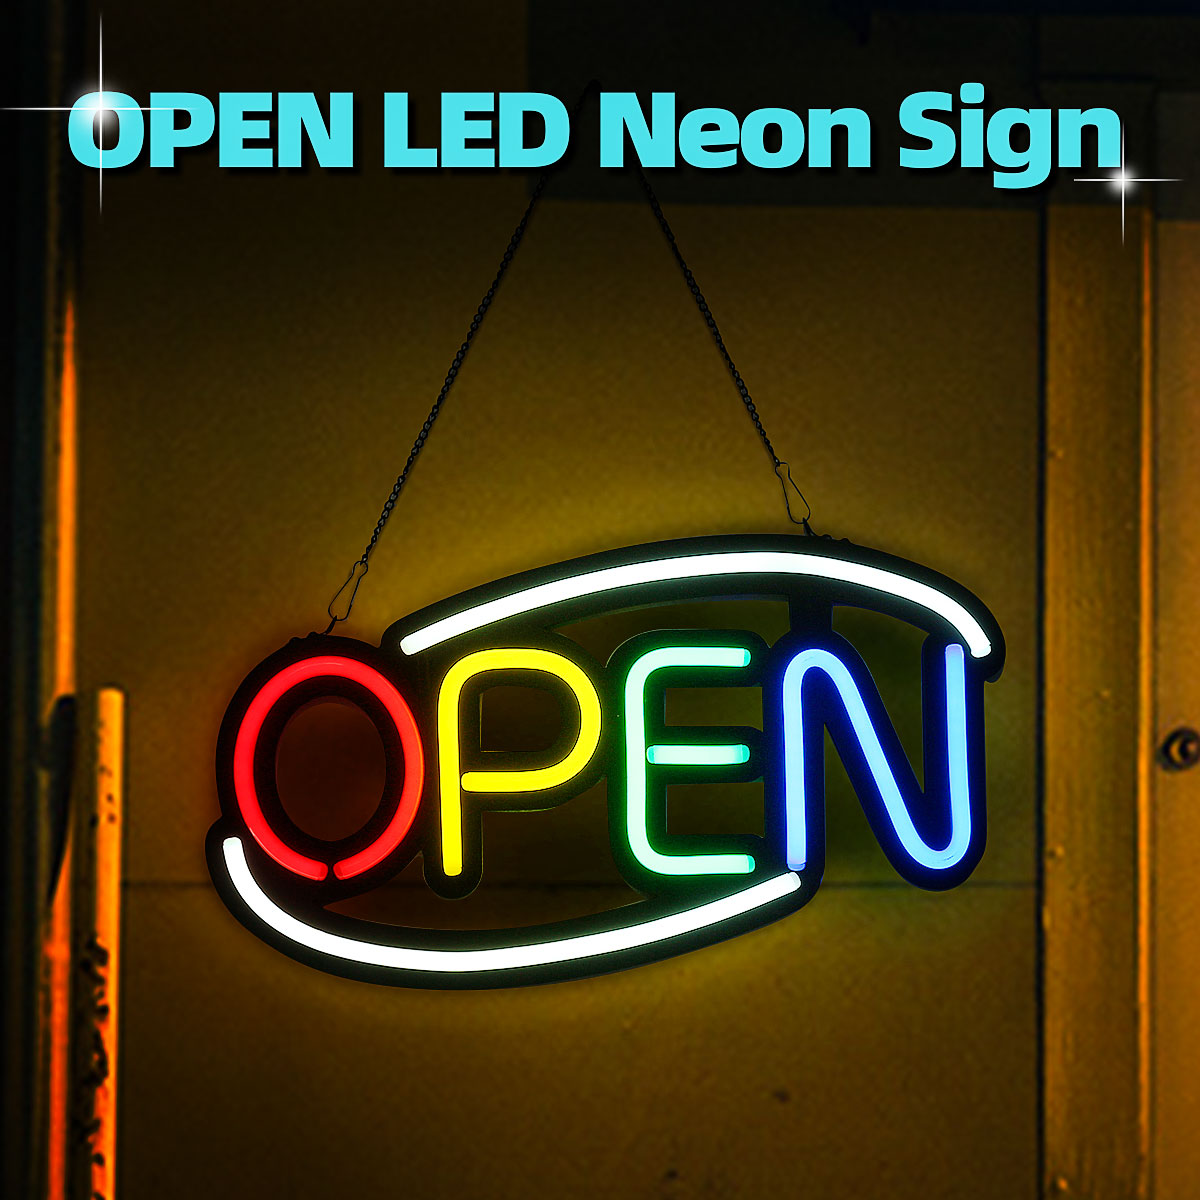 OPEN Neon Sign LED Light Tube Handmade Visual Artwork Cafe Bar Club KTV Wall Decoration Commercial Lighting Colorful Neon Bulbs image